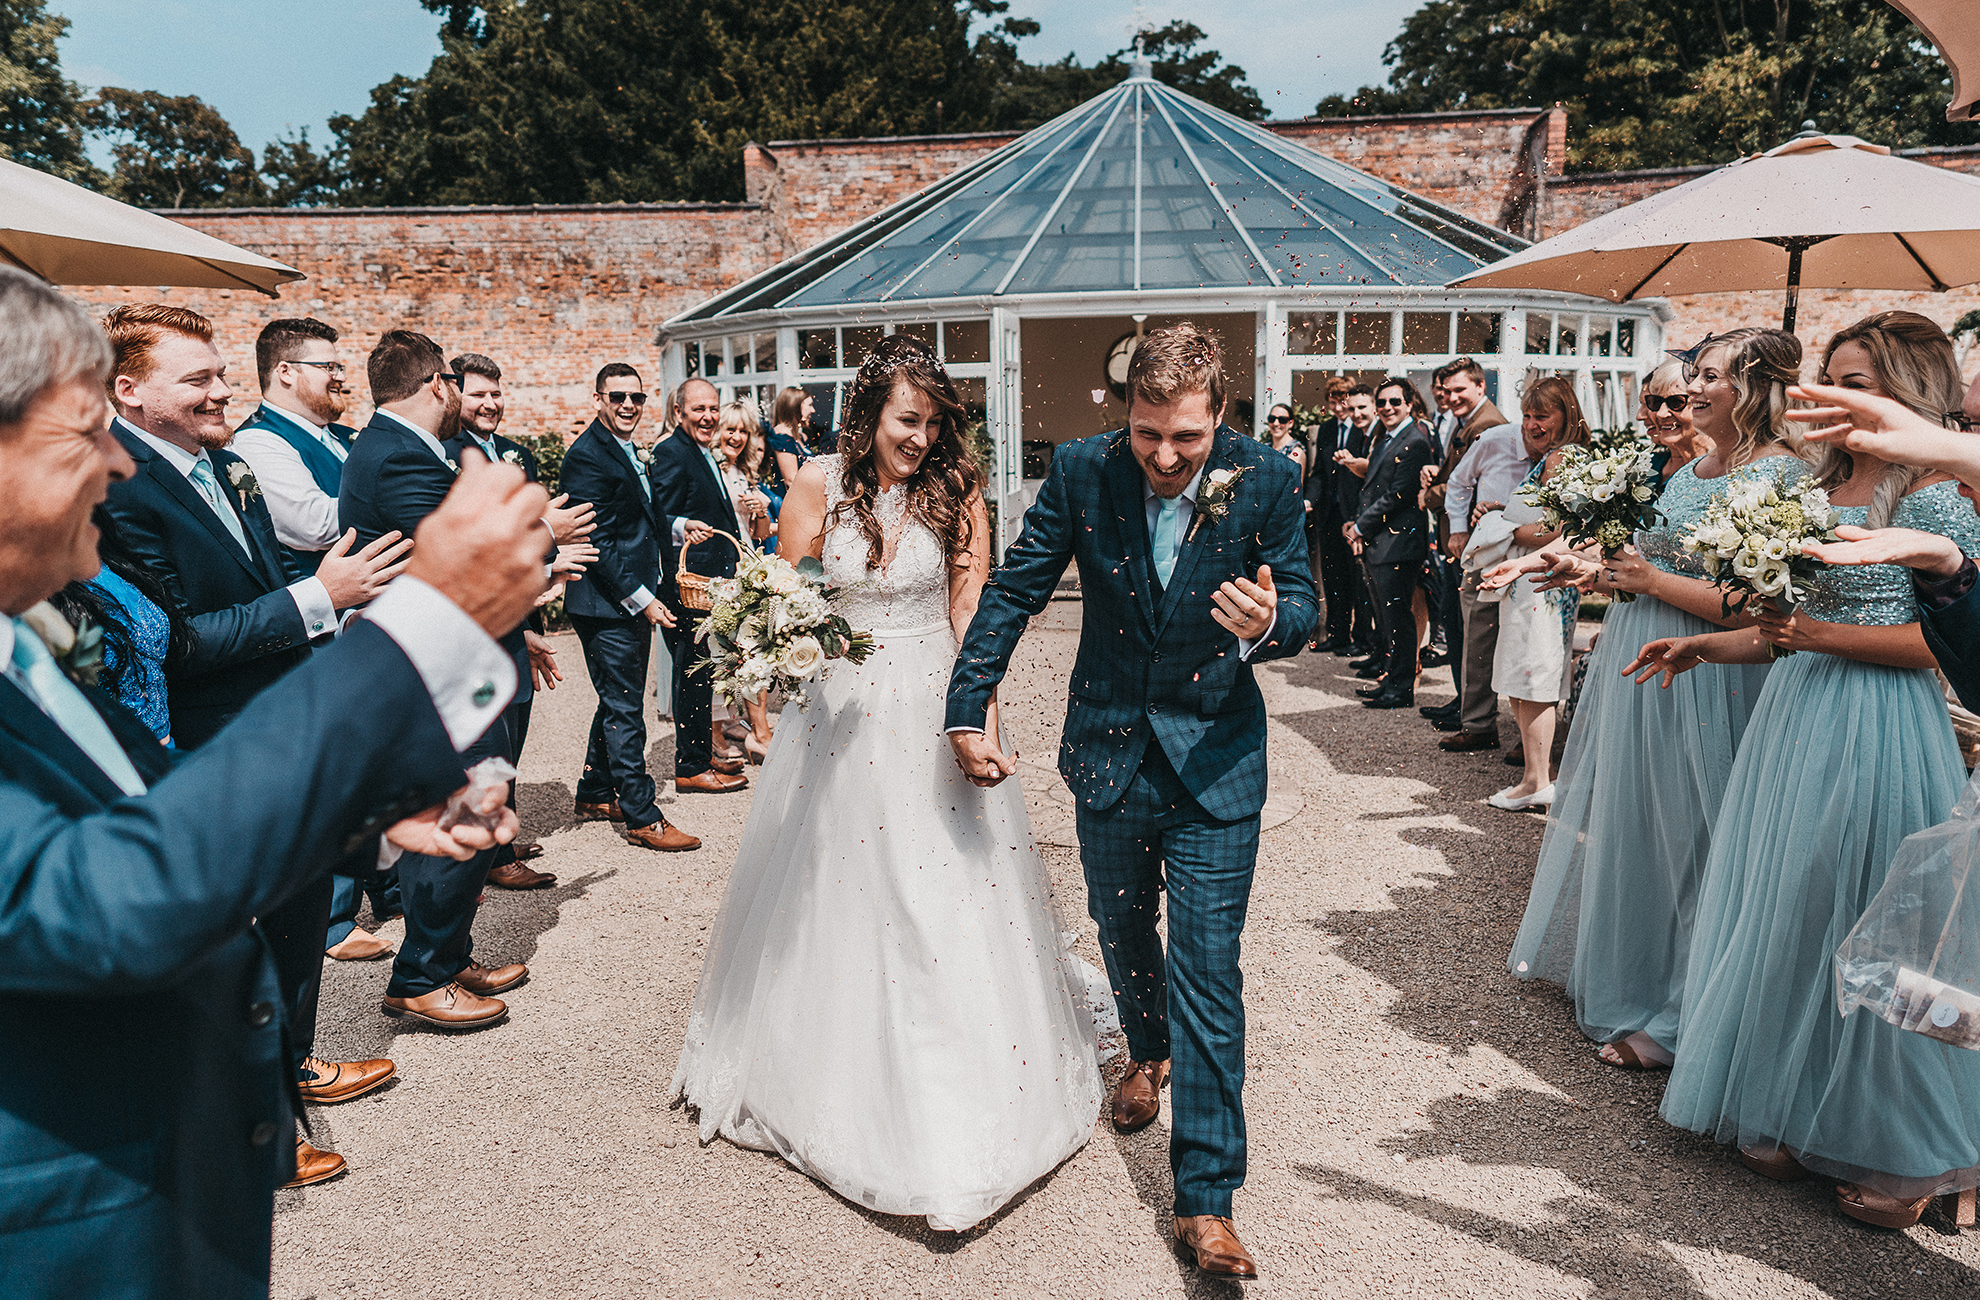 Wedding Planning: 8 Reasons to Plan a 2020 Wedding at Combermere Abbey